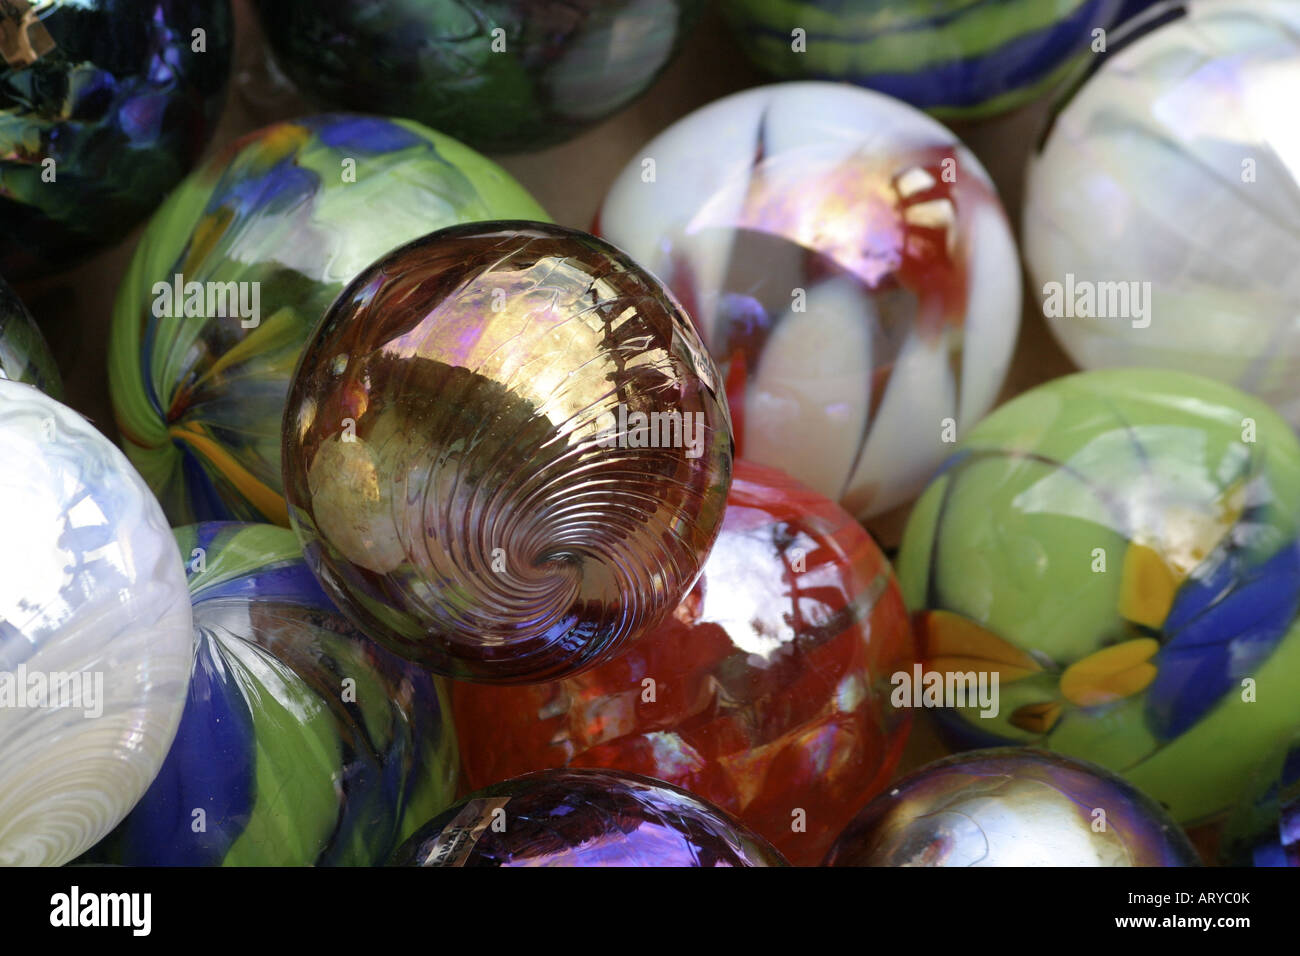 Colorful glass spheres represent the fine art of glassblowing at a studio in the town of Haleiwa on Oahu's north - Stock Image